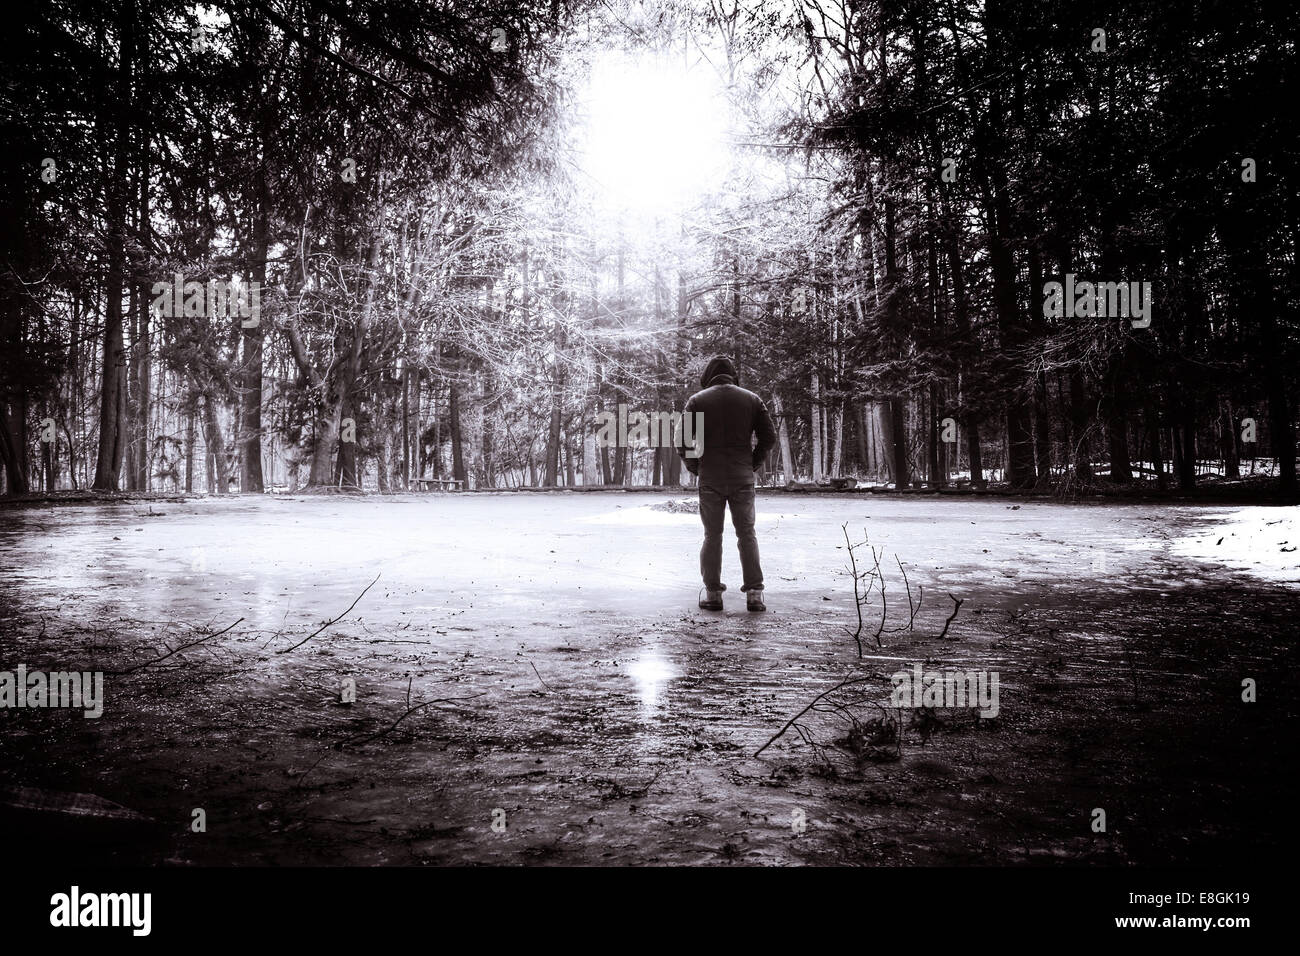 Young man in hooded shirt standing in park, Rear view Stock Photo